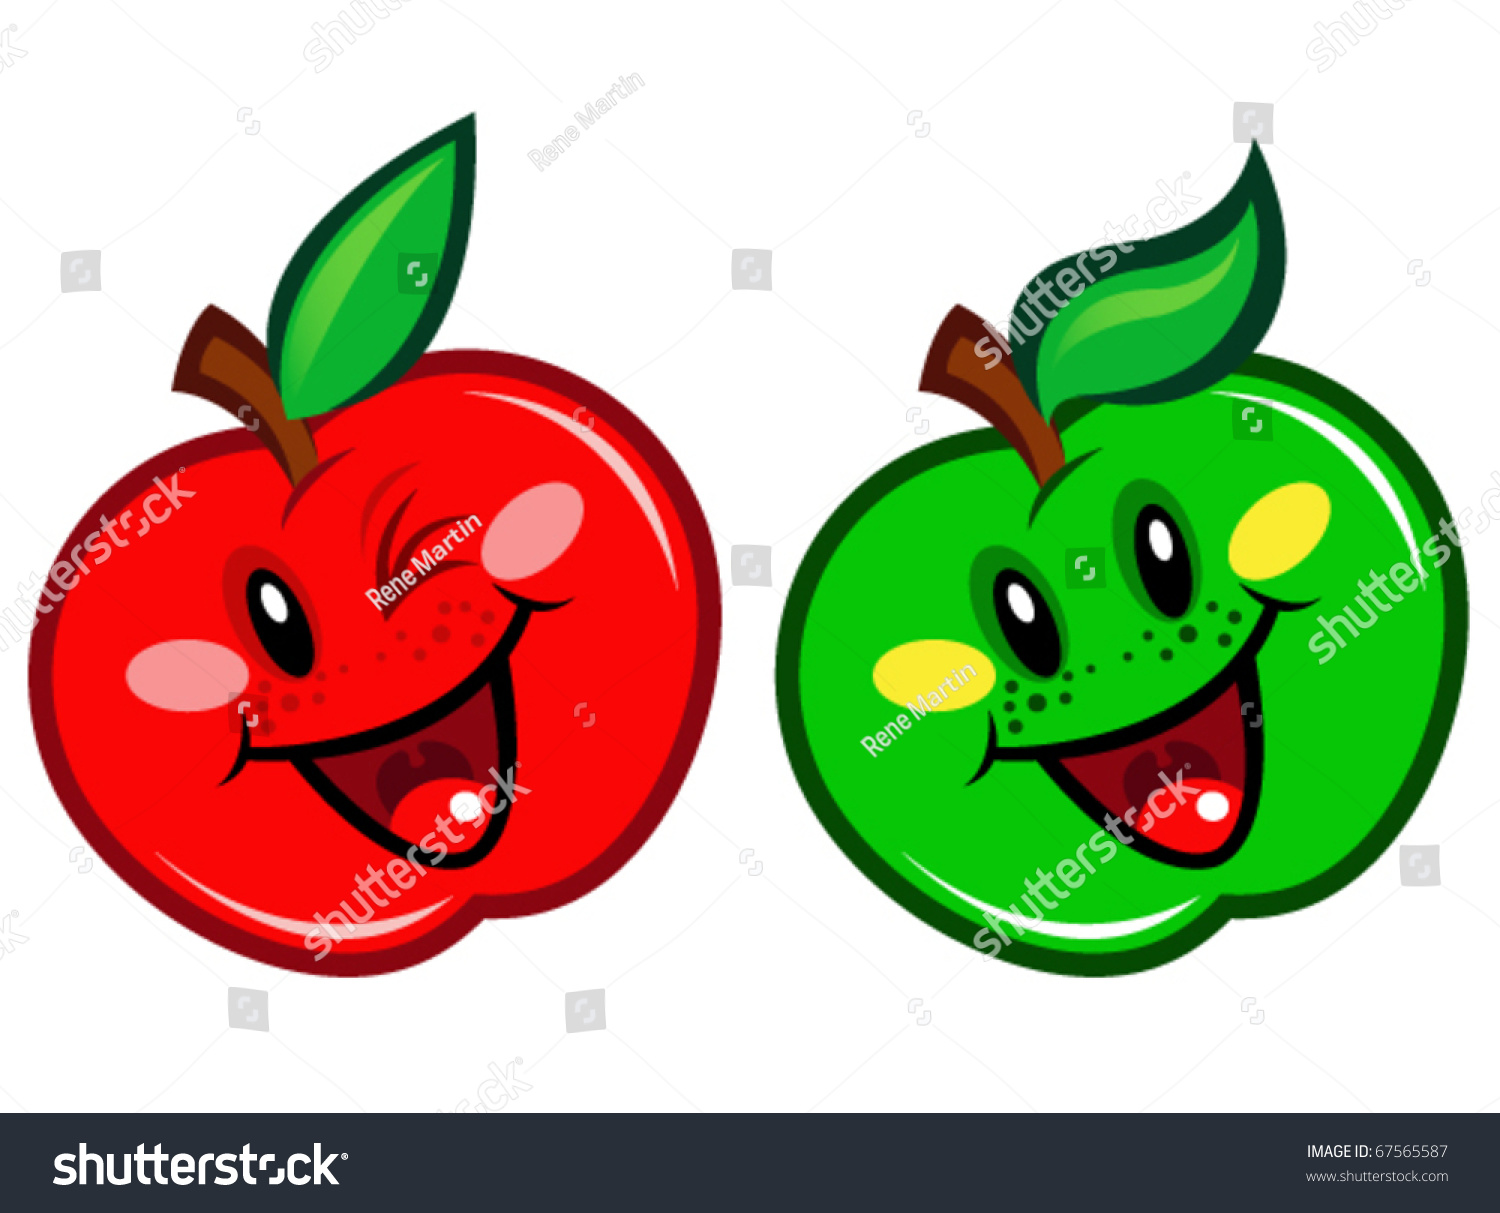 green and red apple clipart. happy green \u0026 red apple and clipart -